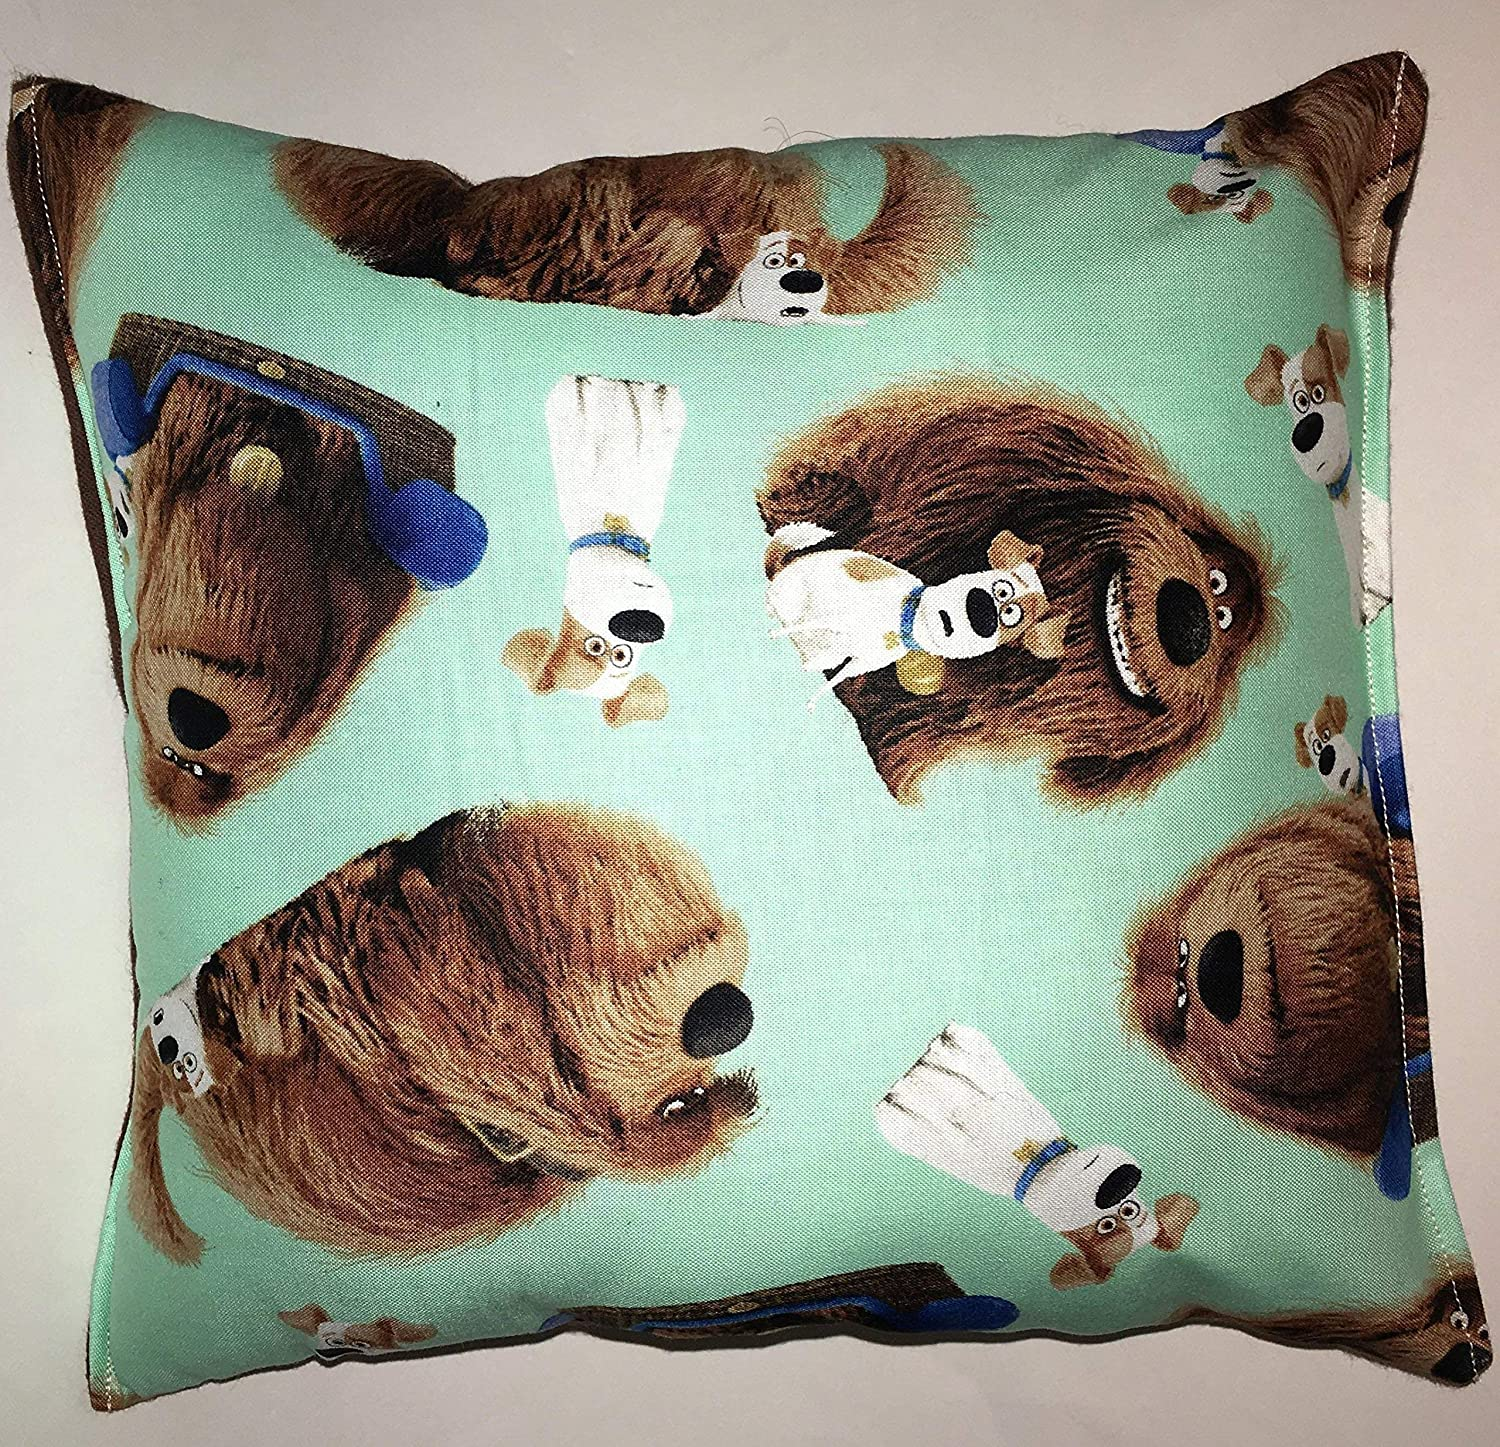 Secret Life Of Pets Pillow 2 Ultra-Cheap Deals All Are Pillows Han Our Dogs Japan's largest assortment